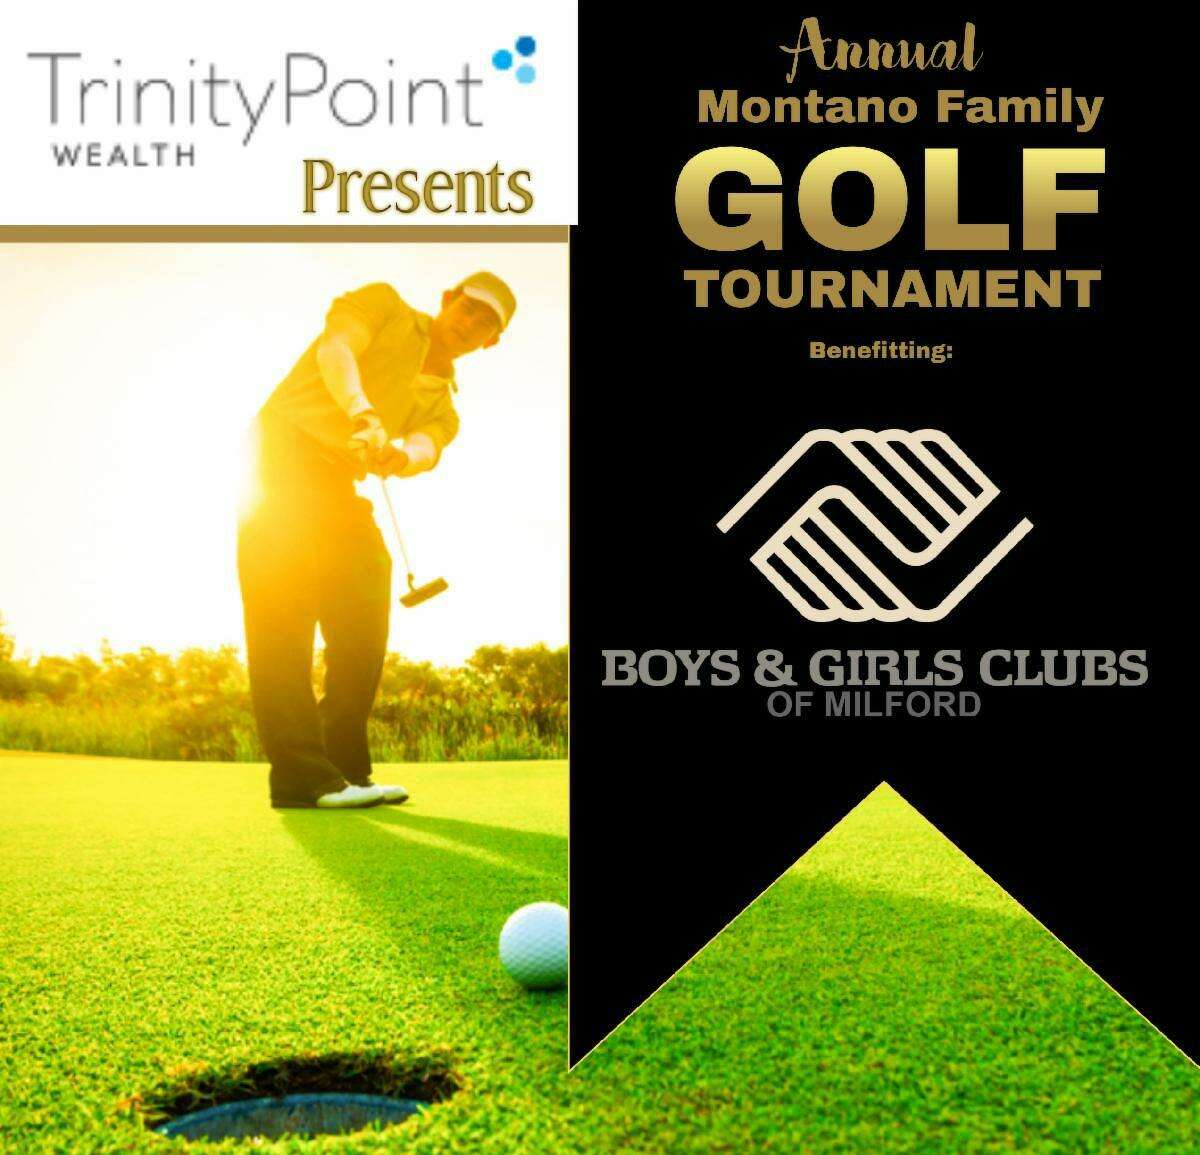 The 4th annual Montano Family Golf Tournament benefiting the Boys & Girls Club of Milford, presented by Trinity Point Wealth will be held Aug. 10, at 10 a.m., at Grassy Hill Country Club in Orange.